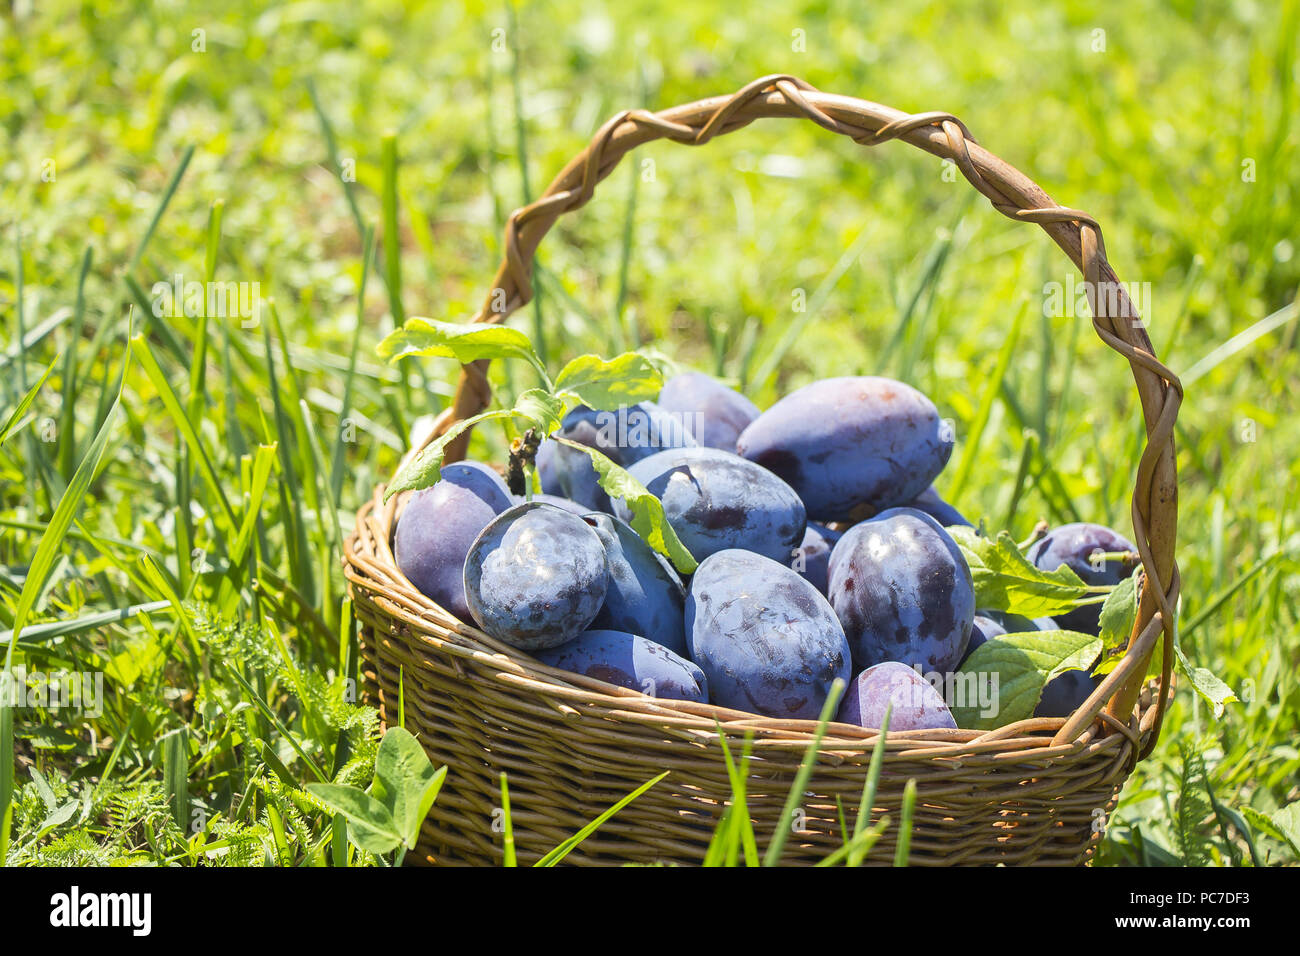 Plums in the wooden basket on green grass Stock Photo